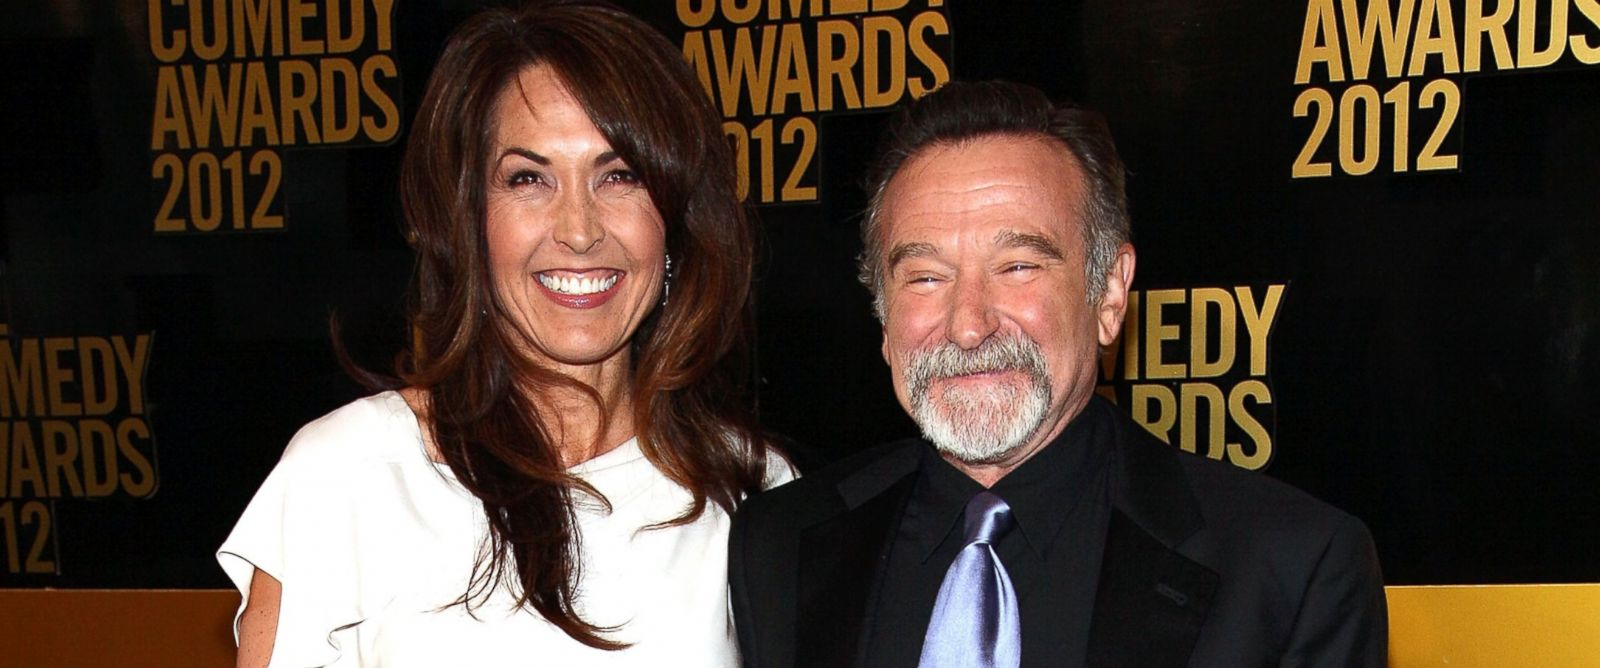 robin williams widow pens emotional essay about the comedian s robin williams widow pens emotional essay about the comedian s final days